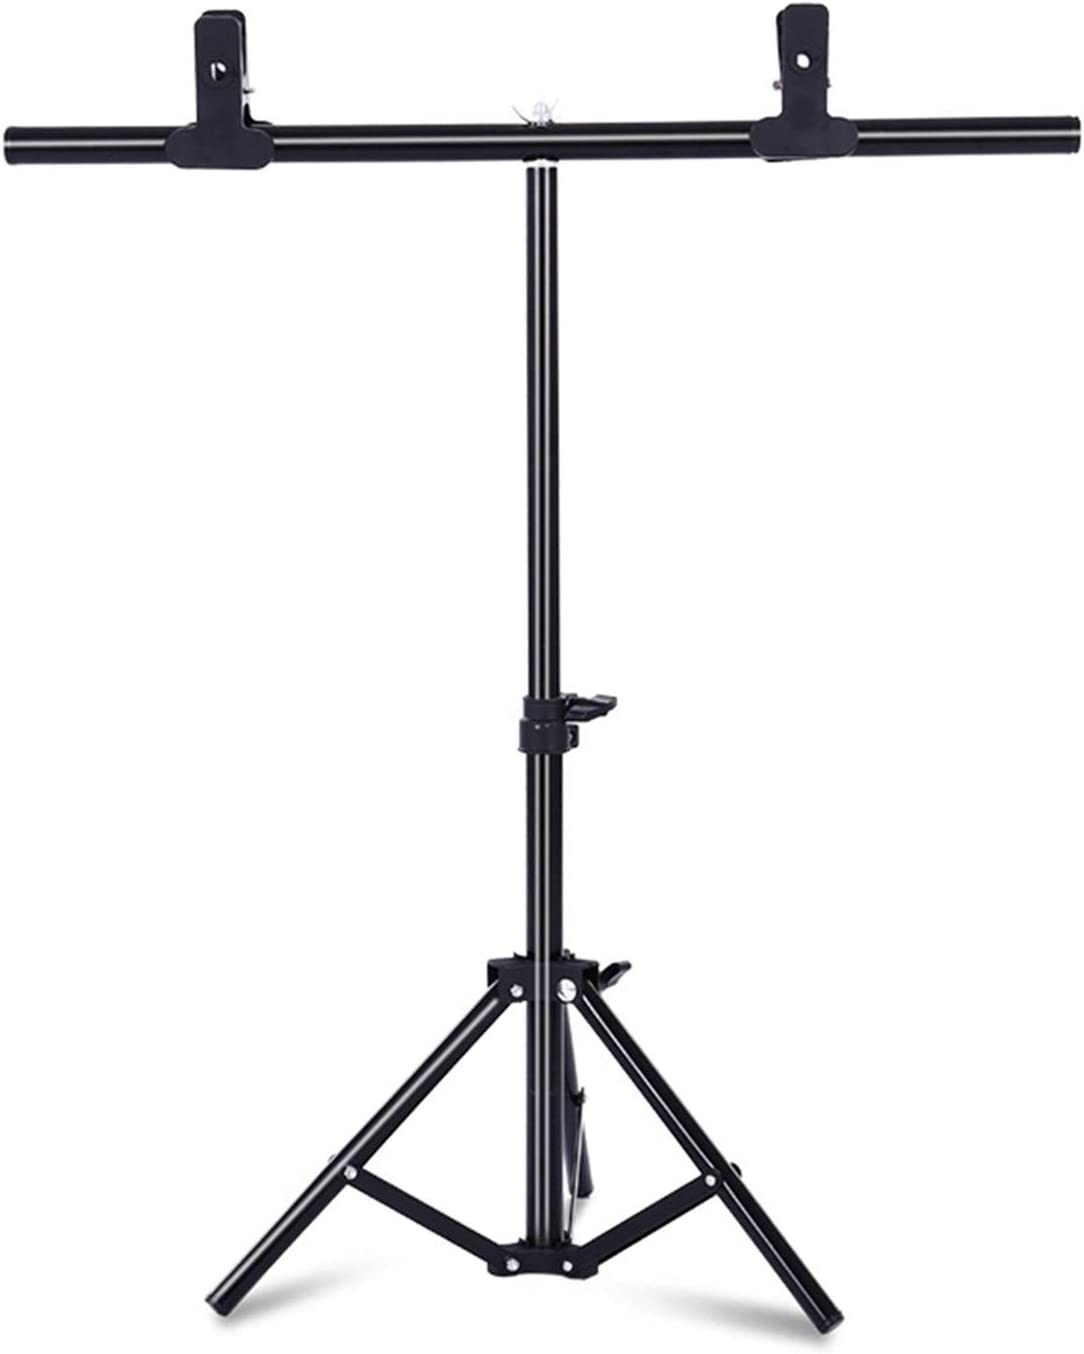 Zhice T-Shape Portable Background OFFicial site Backdrop Stand Adj Support Kit specialty shop